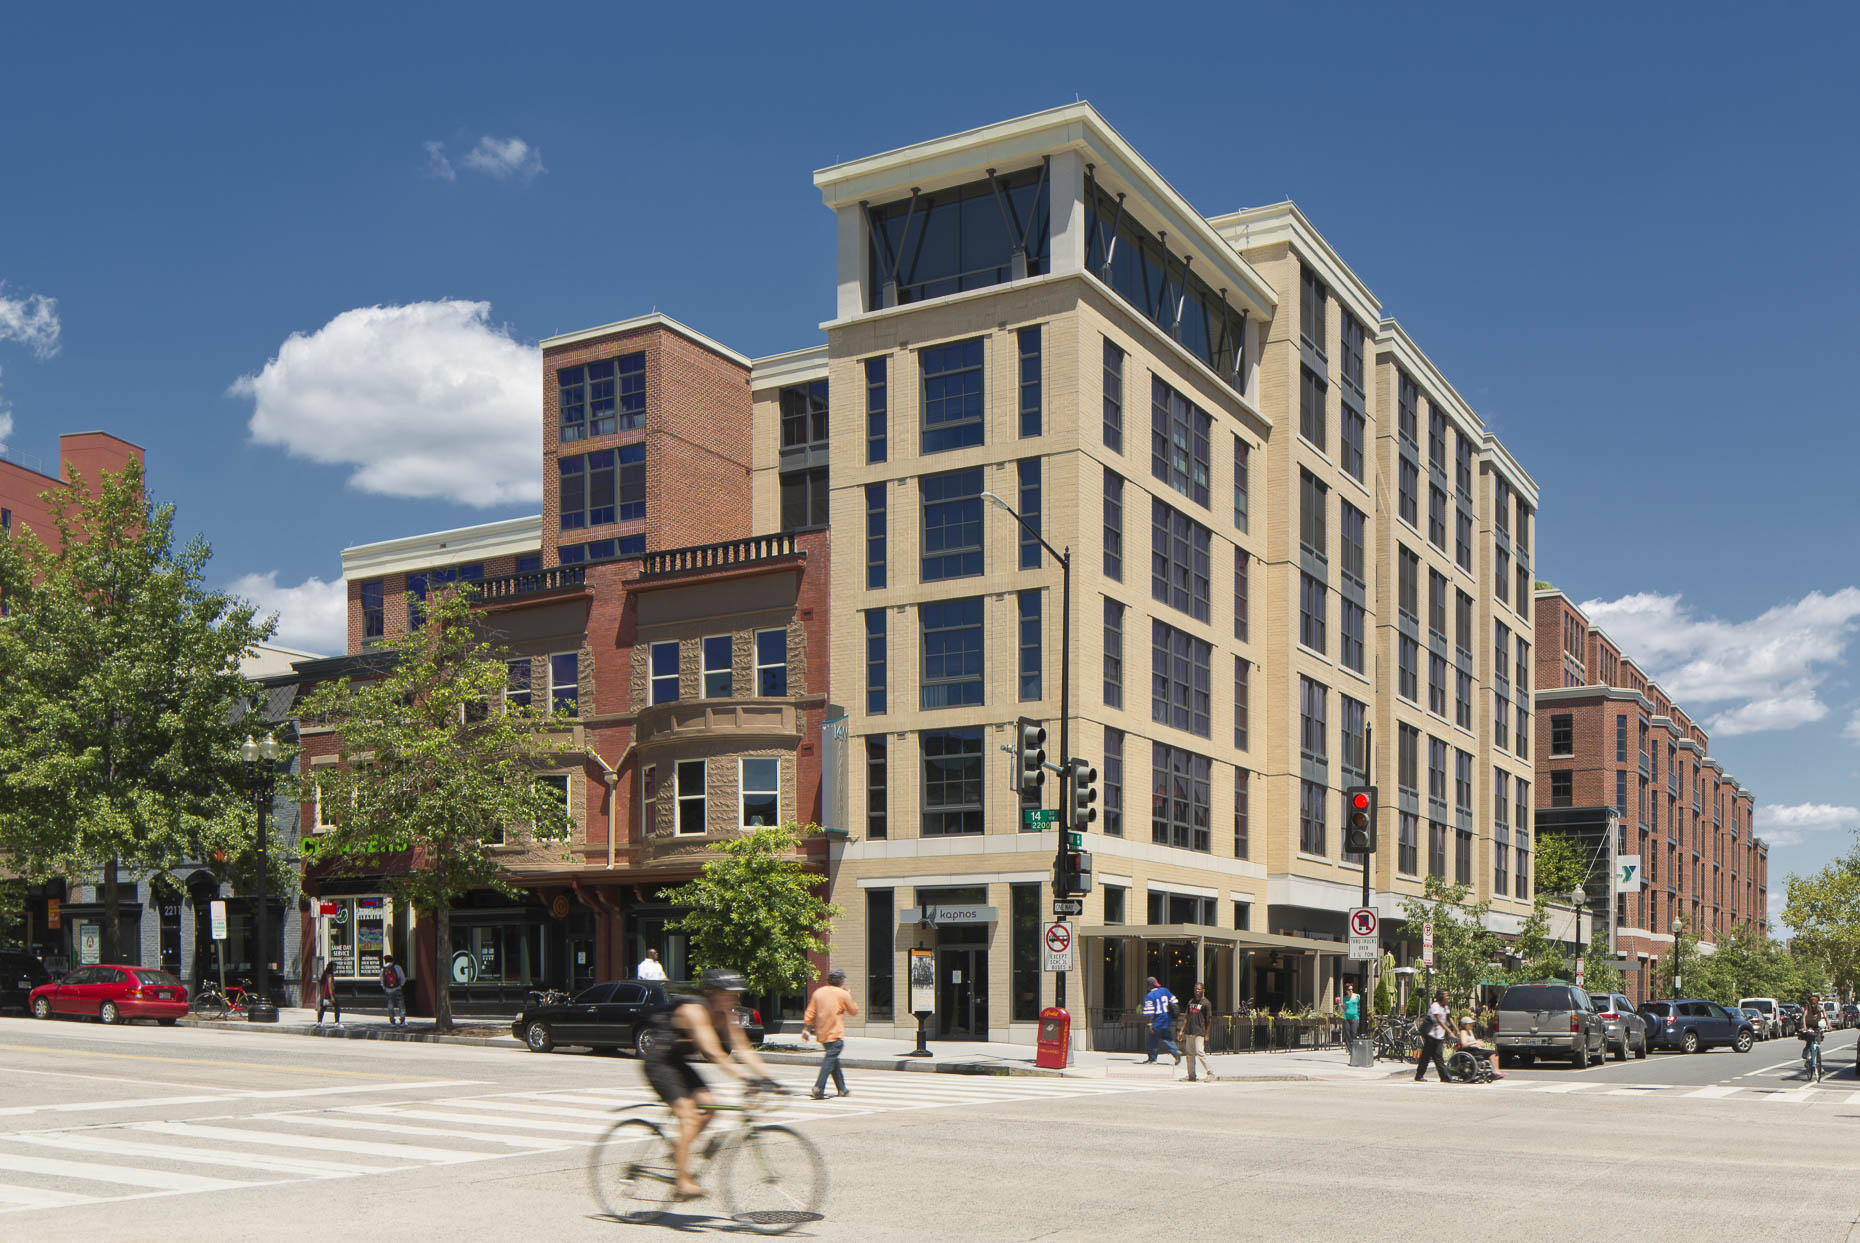 14th & W Street NW / YMCA Anthony Bowen by HOK Photographed by Brad Feinknopf based in Columbus, Ohio